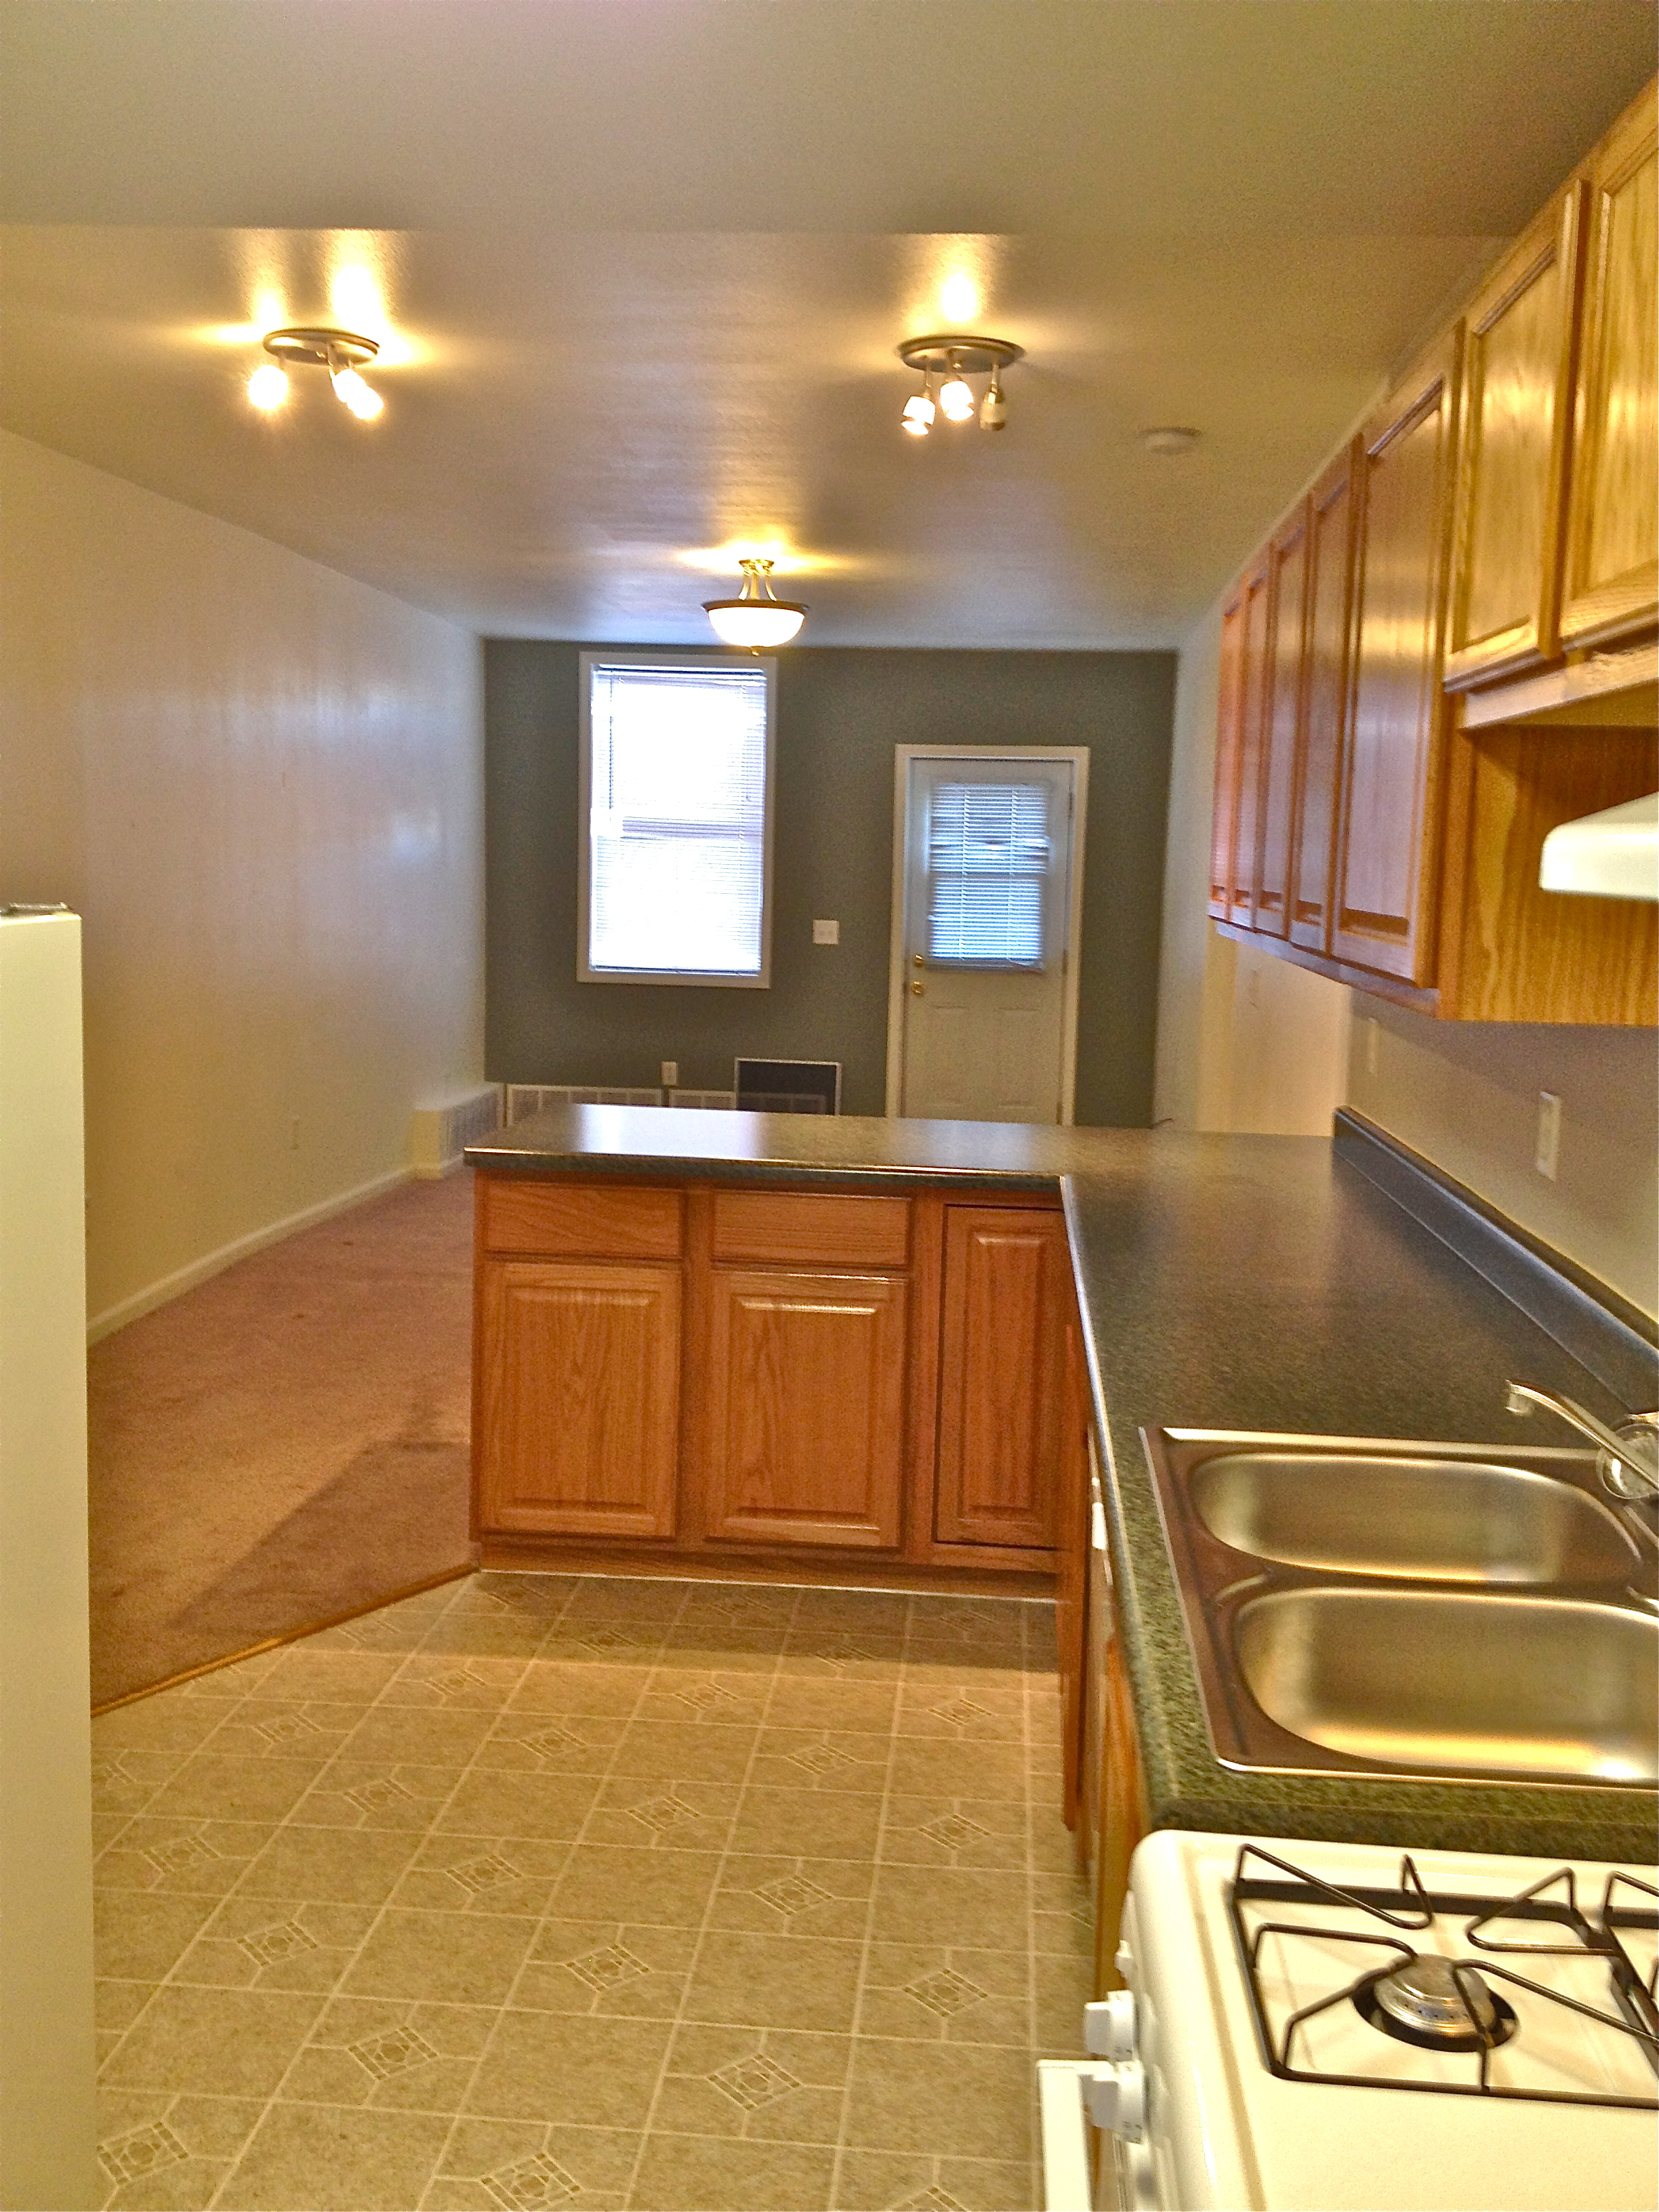 2 Bedroom 2 Bath Apartment Available Now Per Month 319 Casper Rental Central